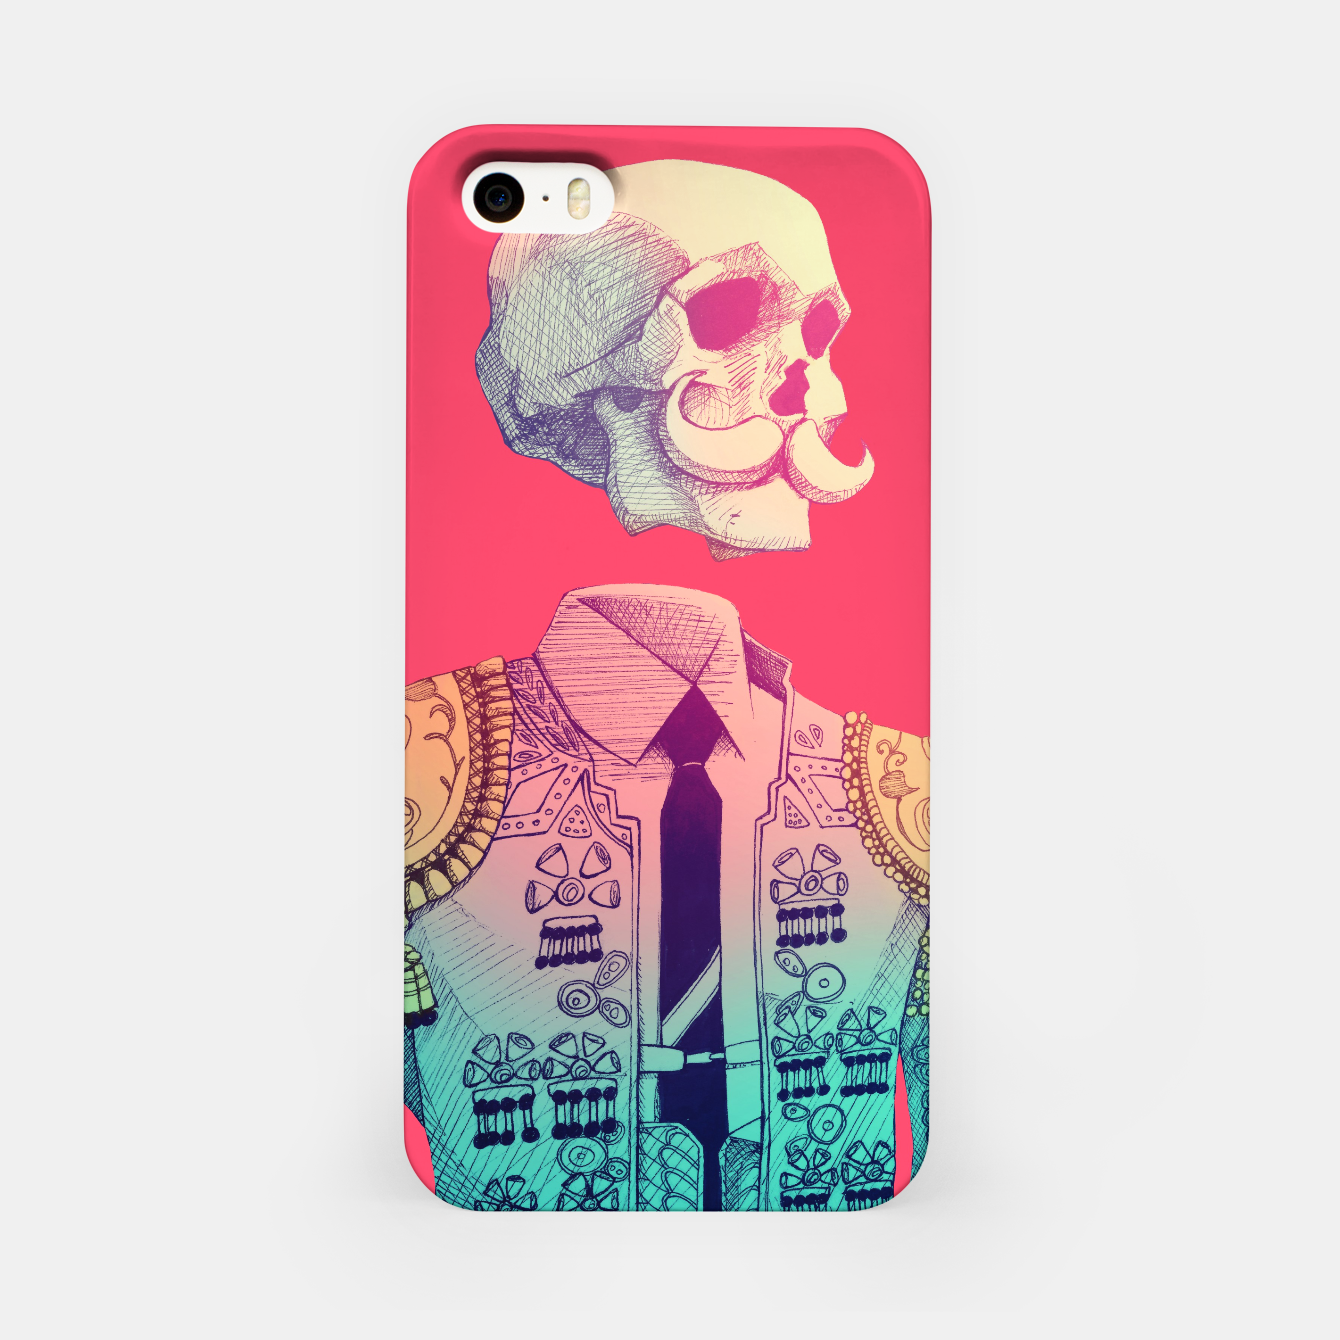 Foto Matador iPhone Case - Live Heroes